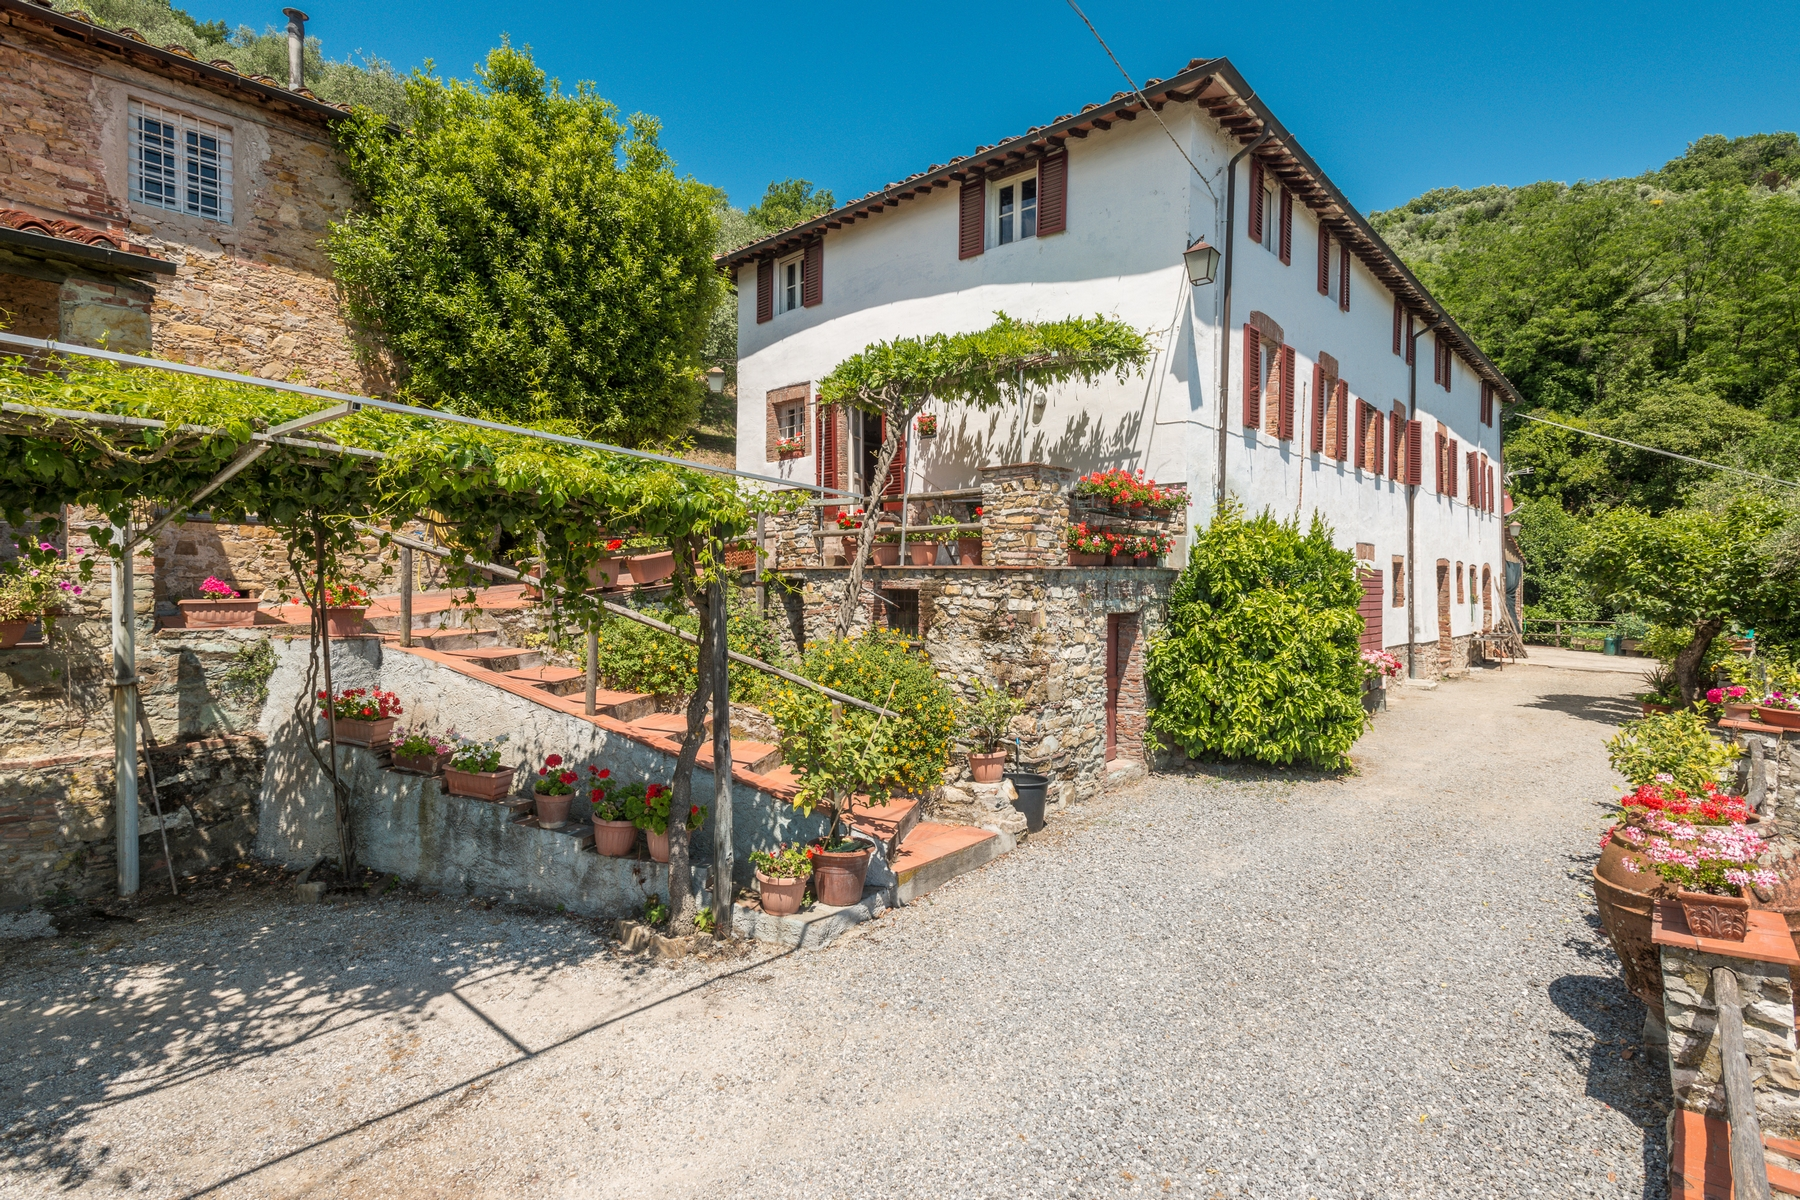 Additional photo for property listing at Country home near Lucca San Concordio di Moriano Lucca, Lucca 55100 Italia